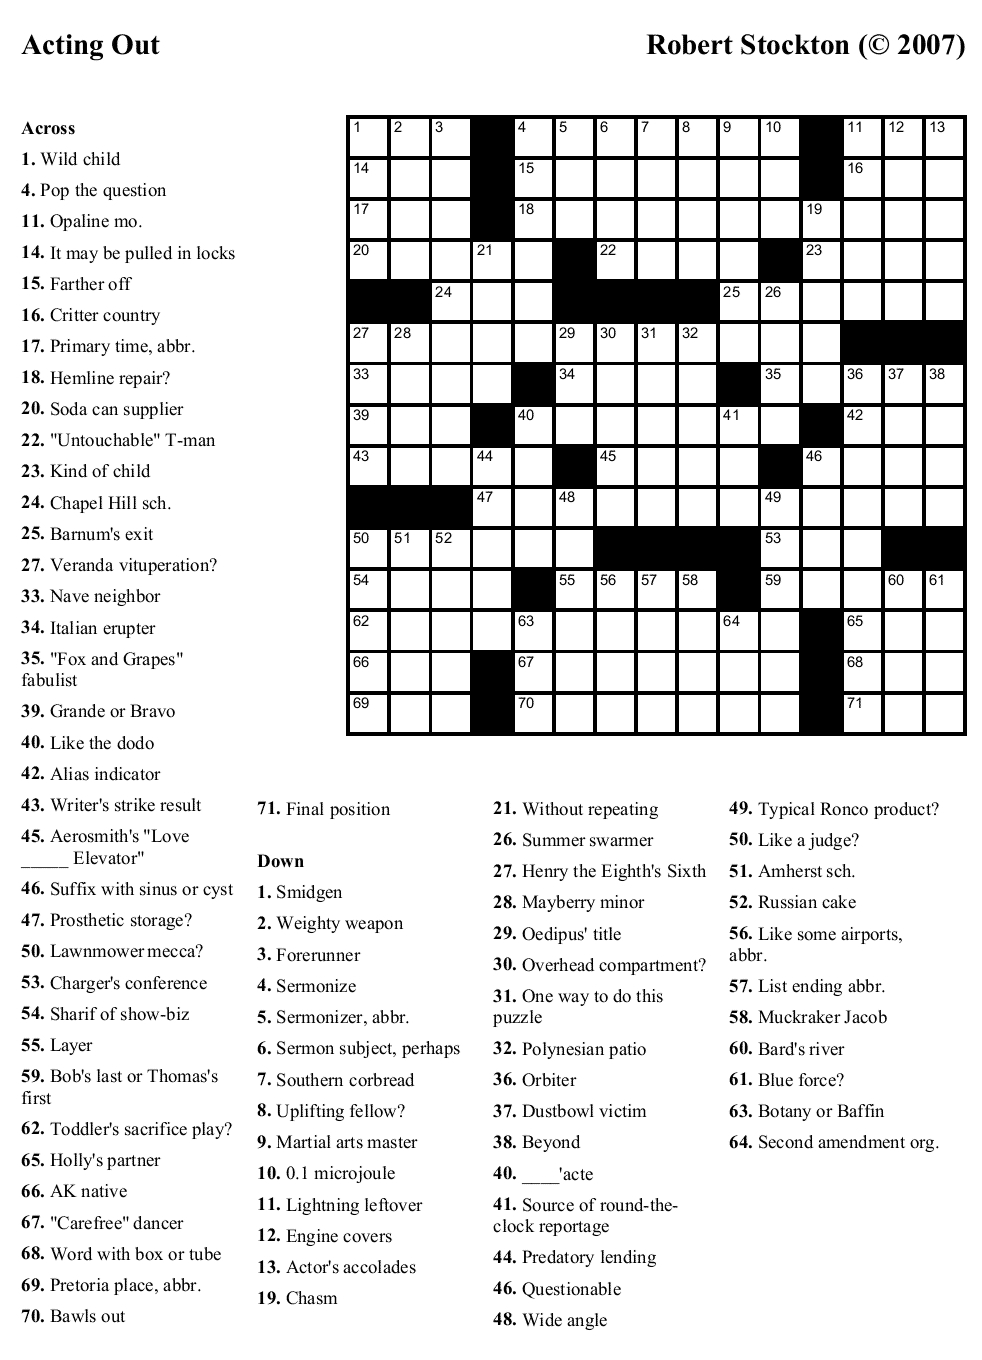 Astounding Crossword Puzzle Maker Online Printable ~ Themarketonholly - Free Online Printable Crossword Puzzles